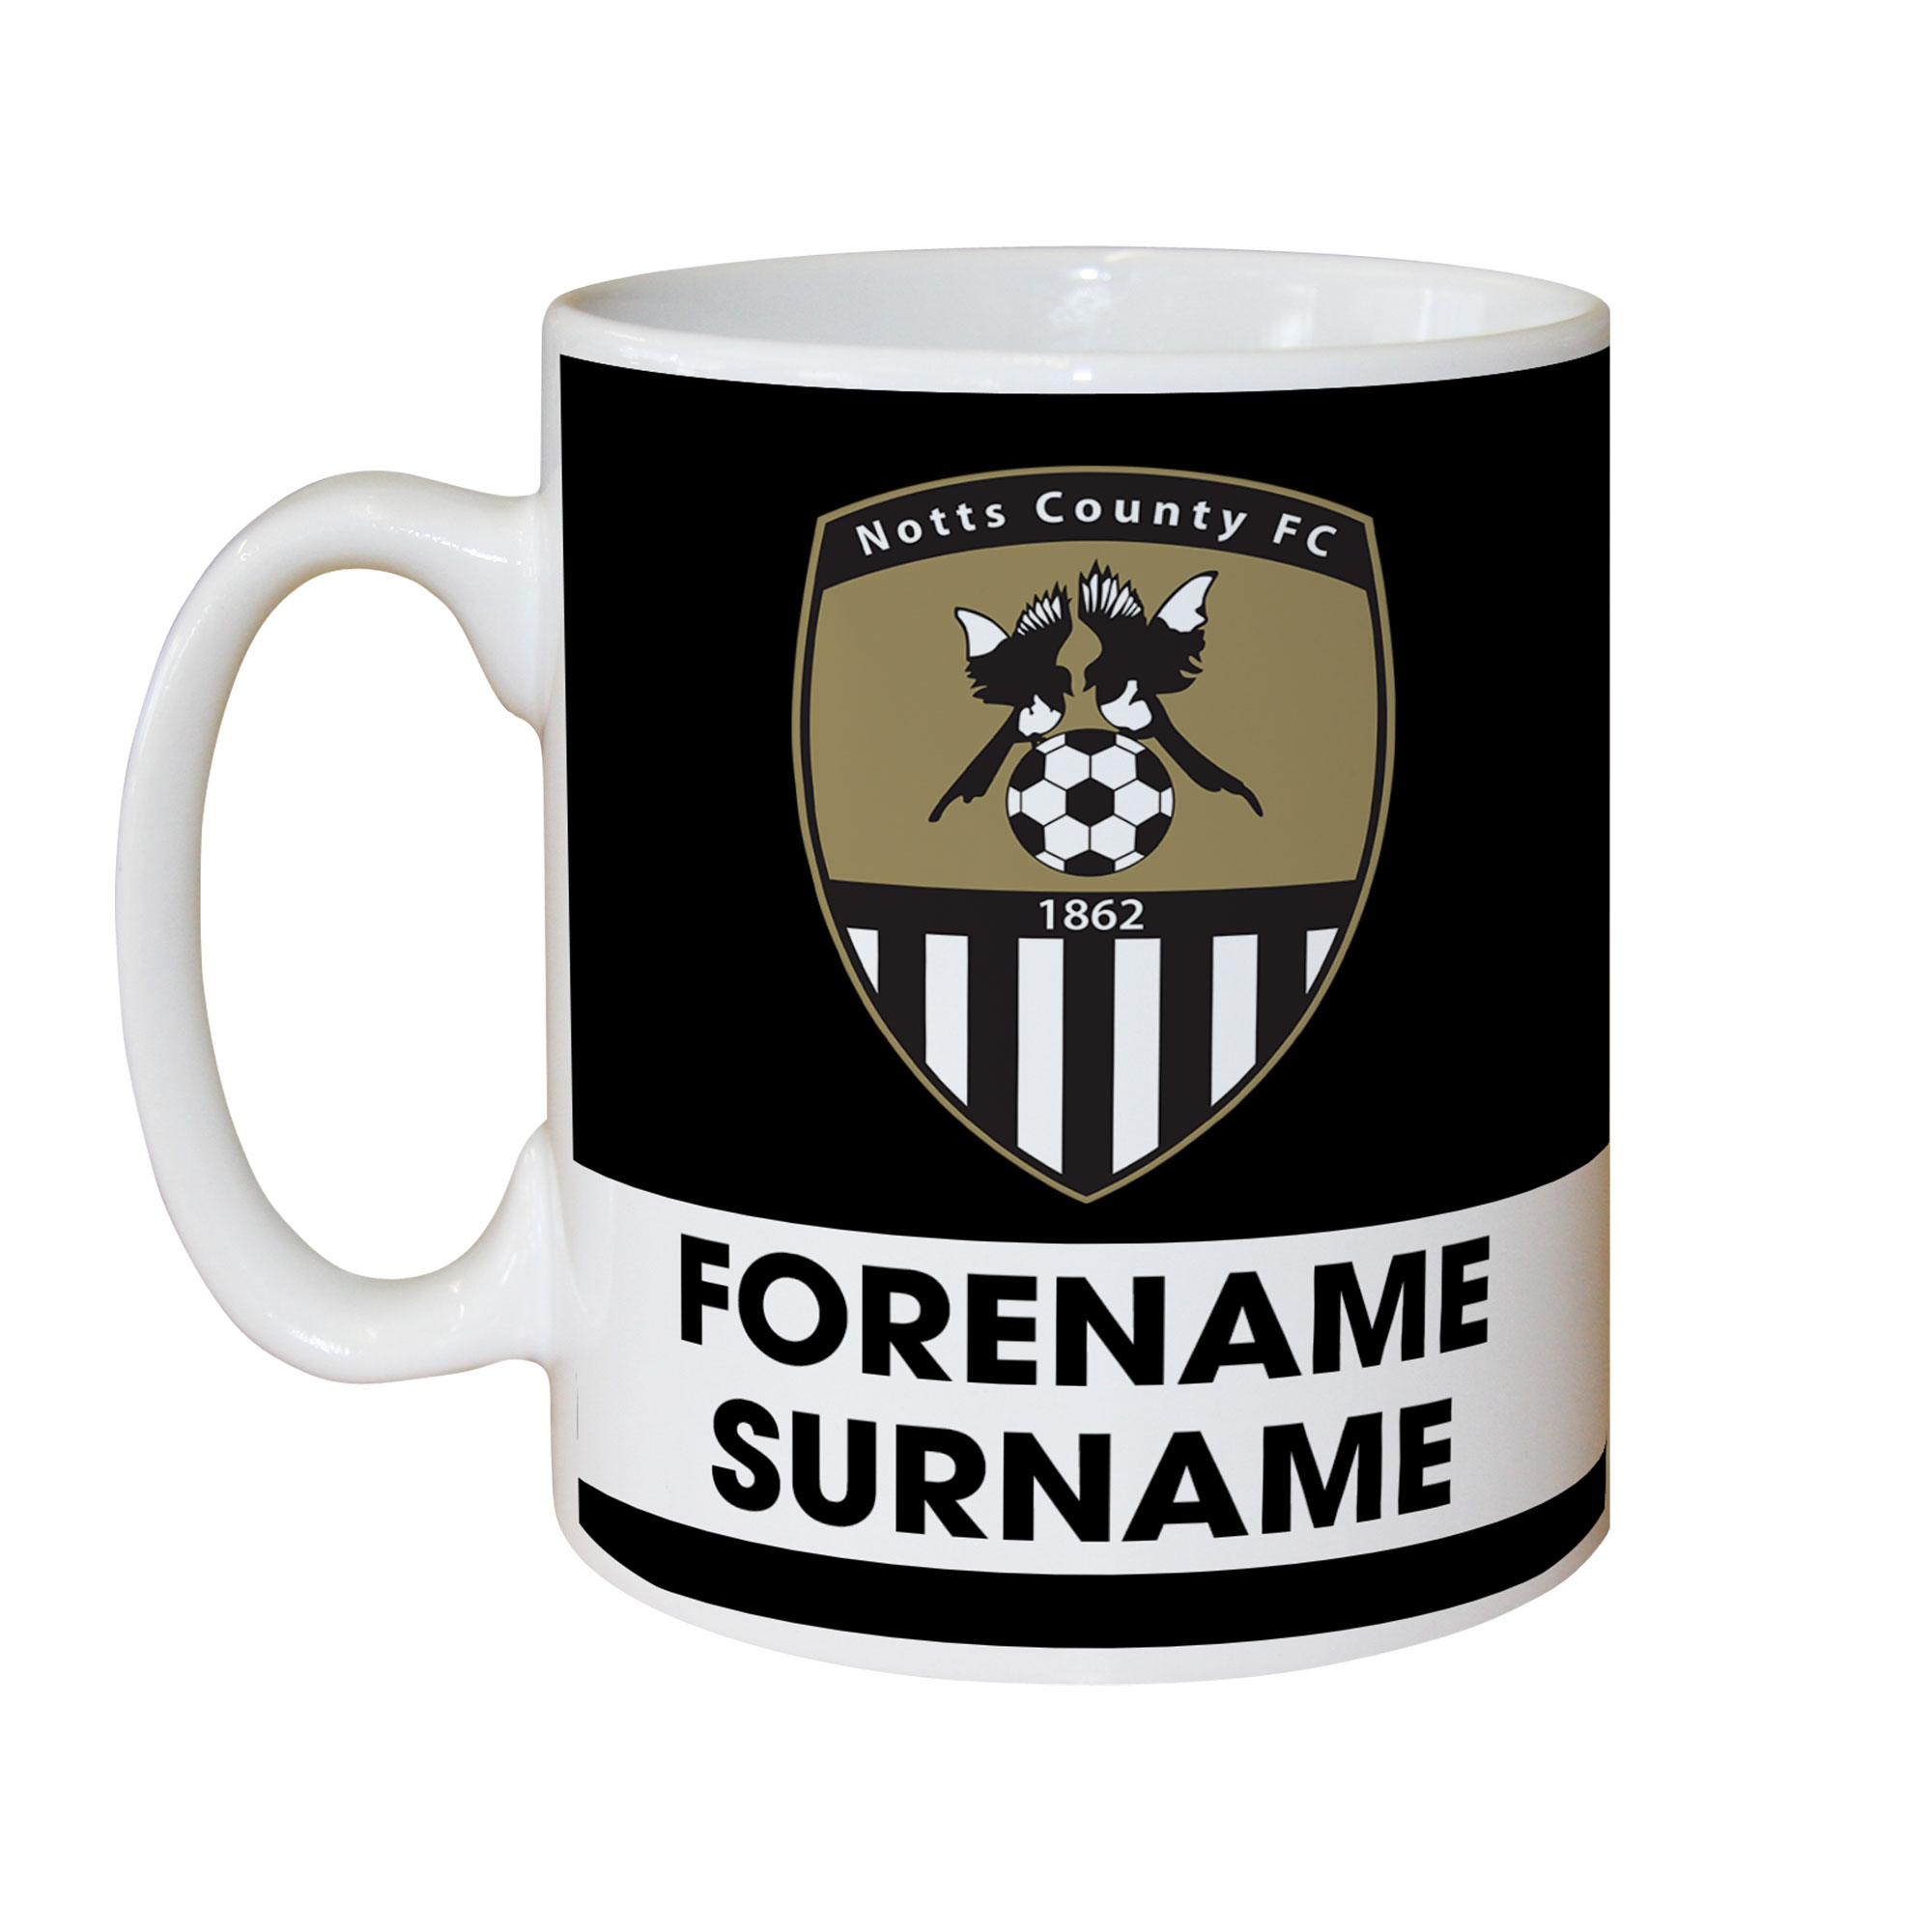 Notts County FC Eat Sleep Drink Mug